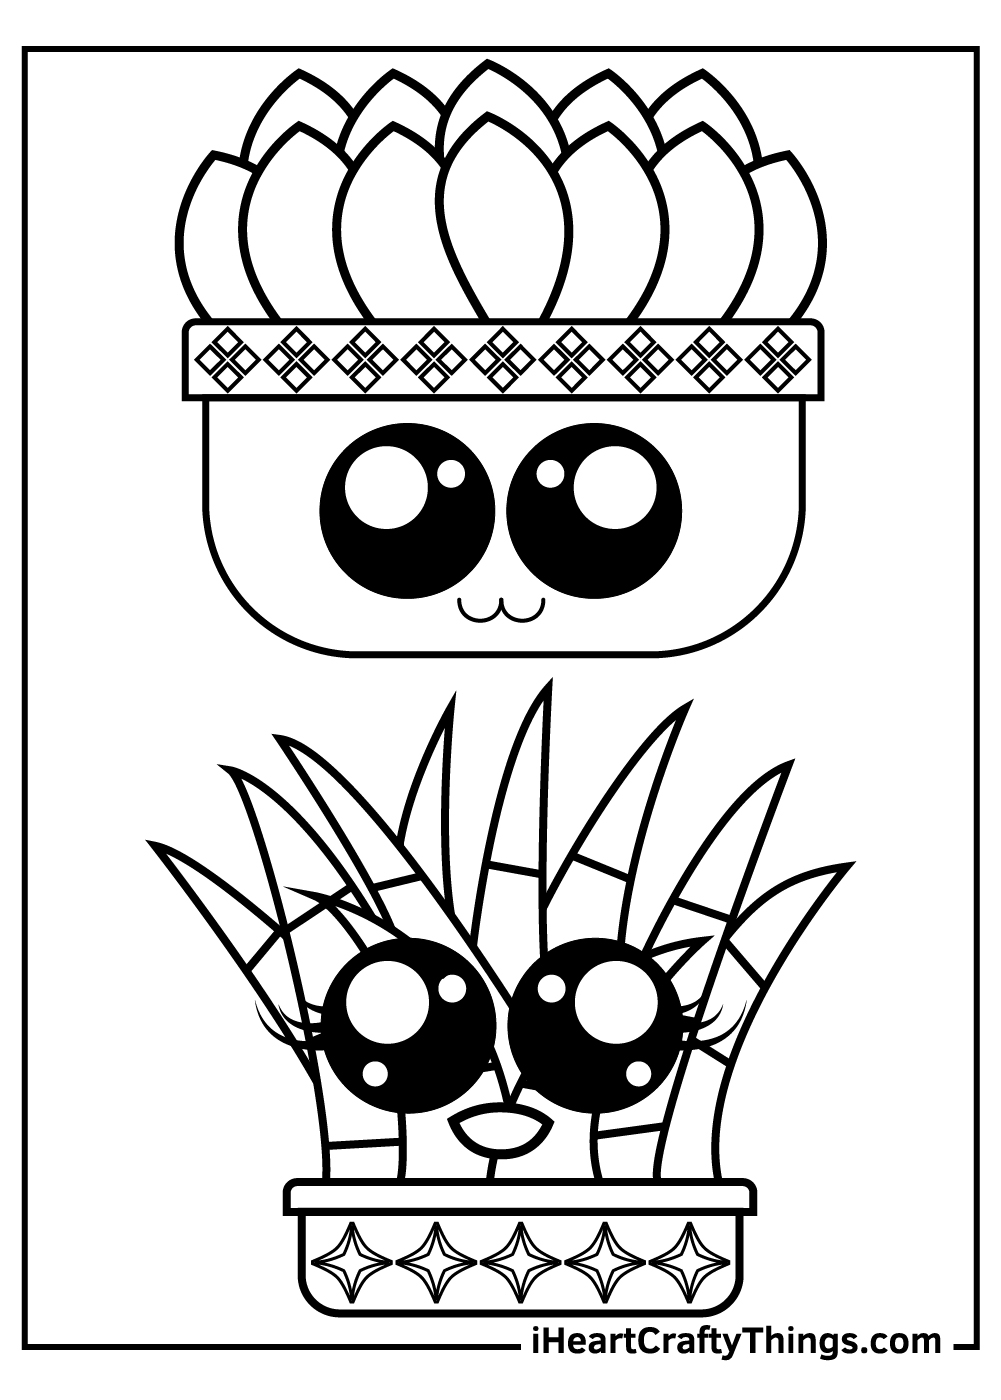 cute smiling cactus coloring pages